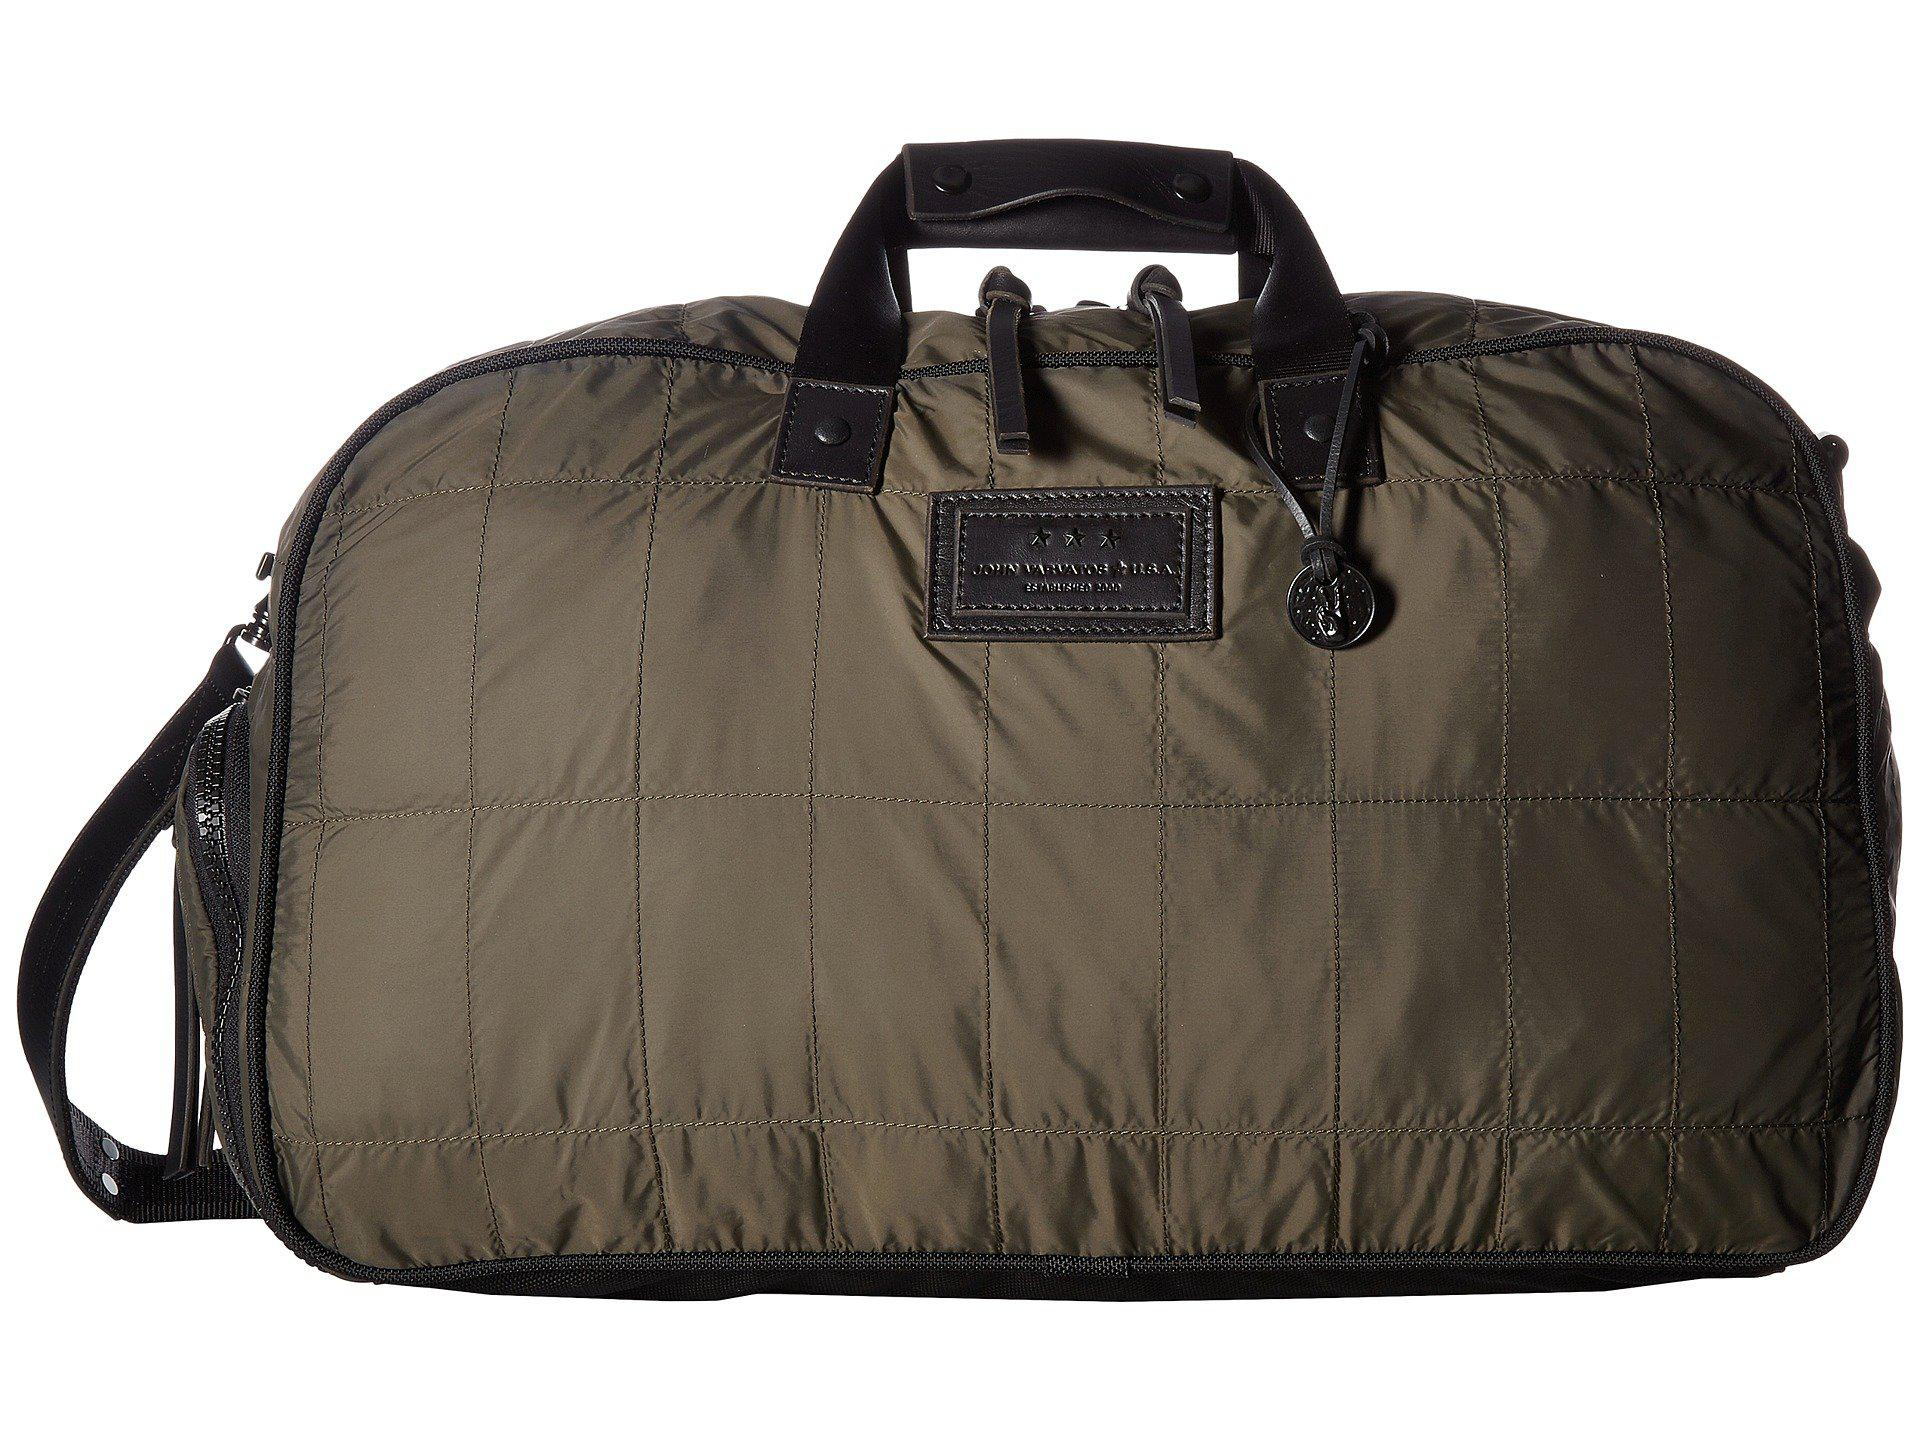 John Varvatos Quilted Nylon Duffel With Shoe Pack 6LCy1qjg2